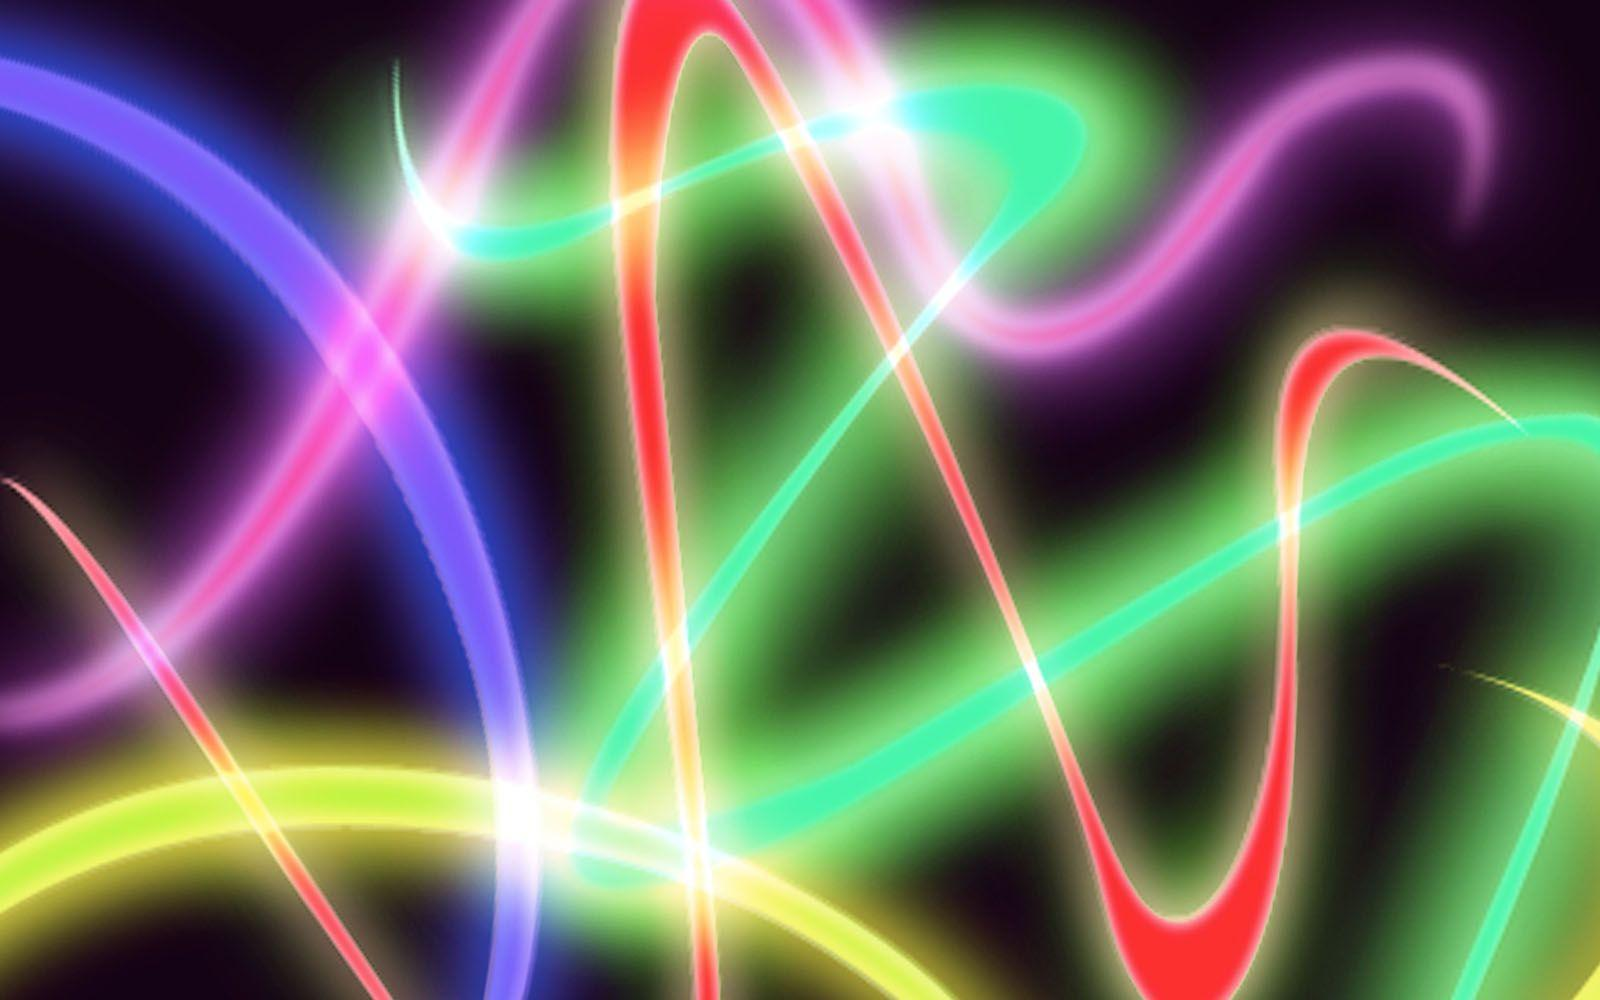 Neon Wallpapers Free - Wallpaper Cave